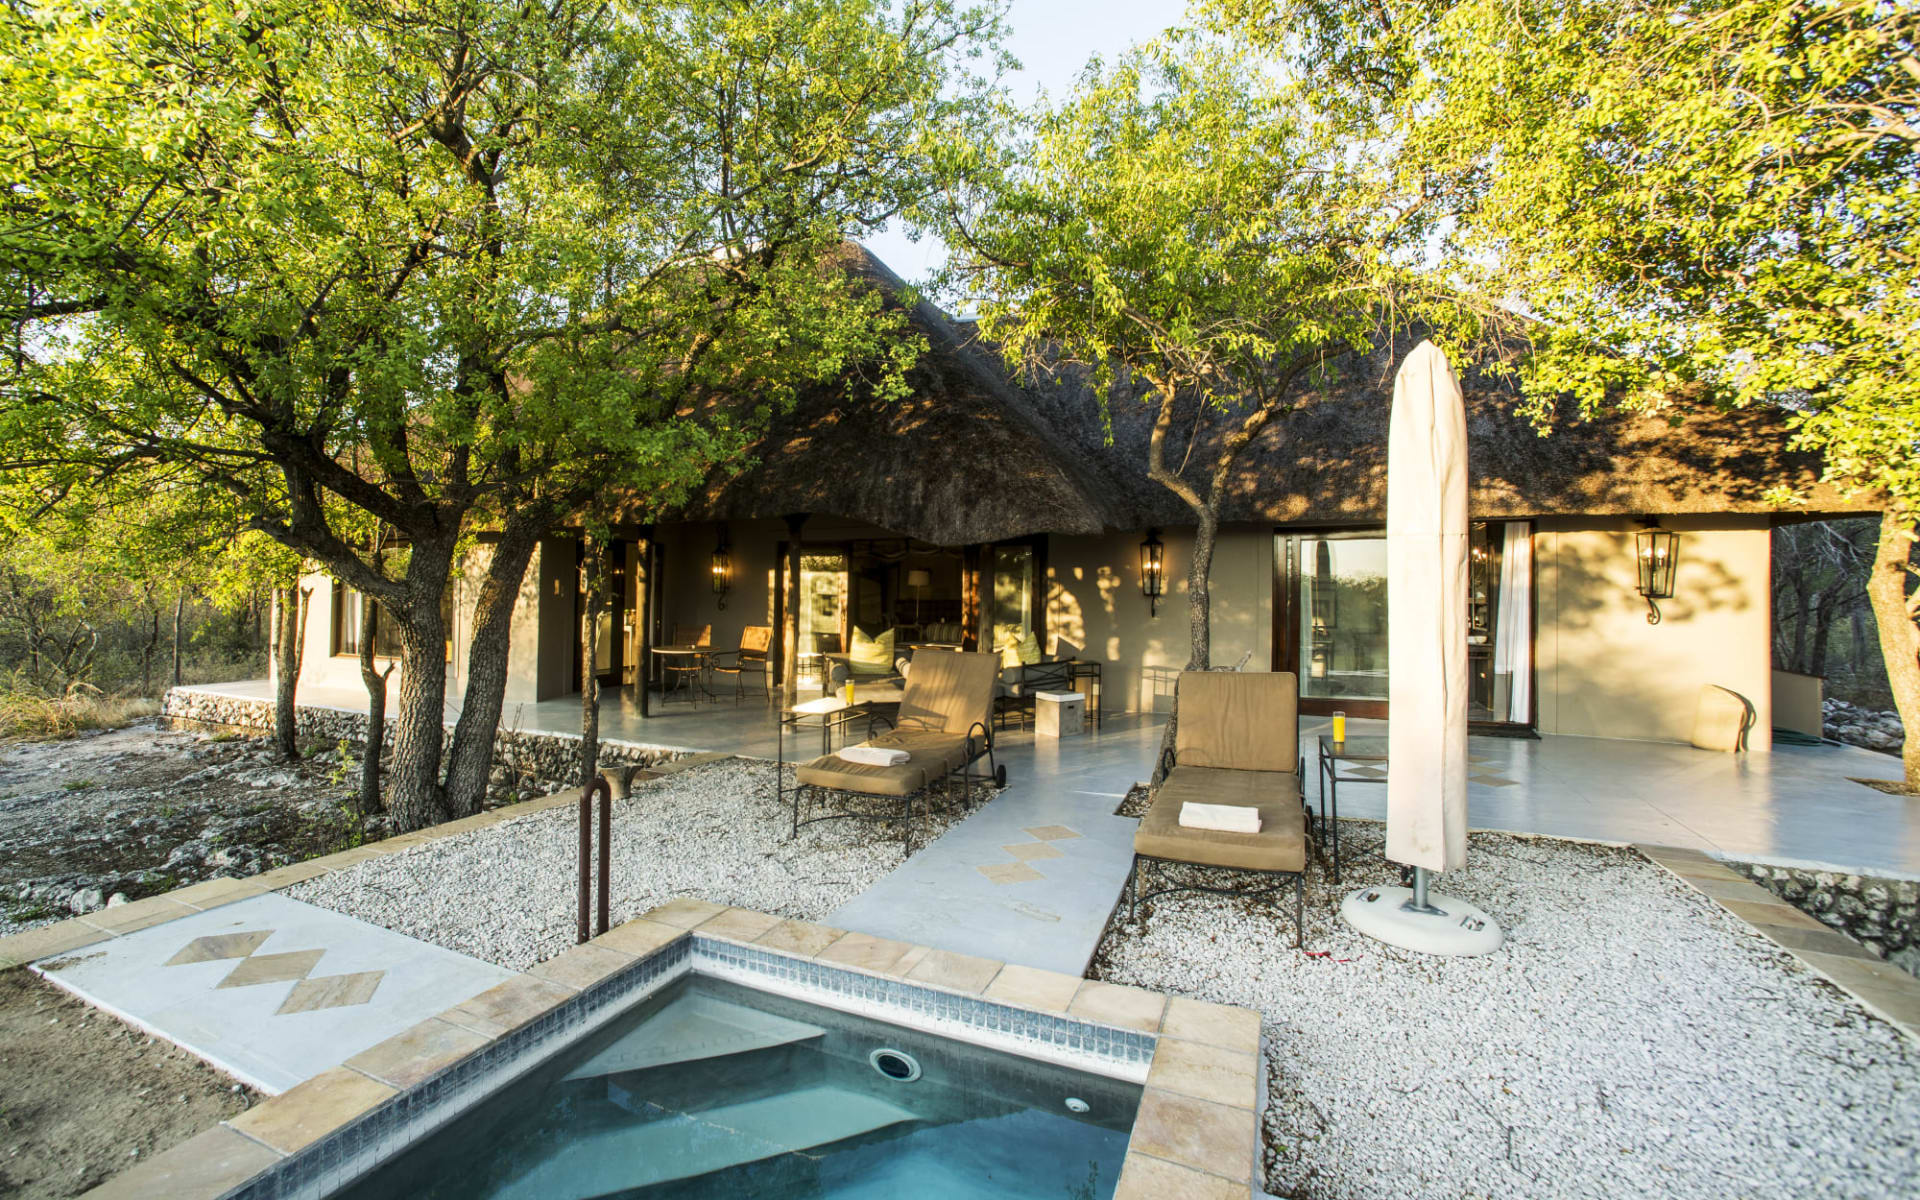 Villa Mushara in Etosha Nationalpark: facilities Villa Mushara - Terrasse mit Planschpool